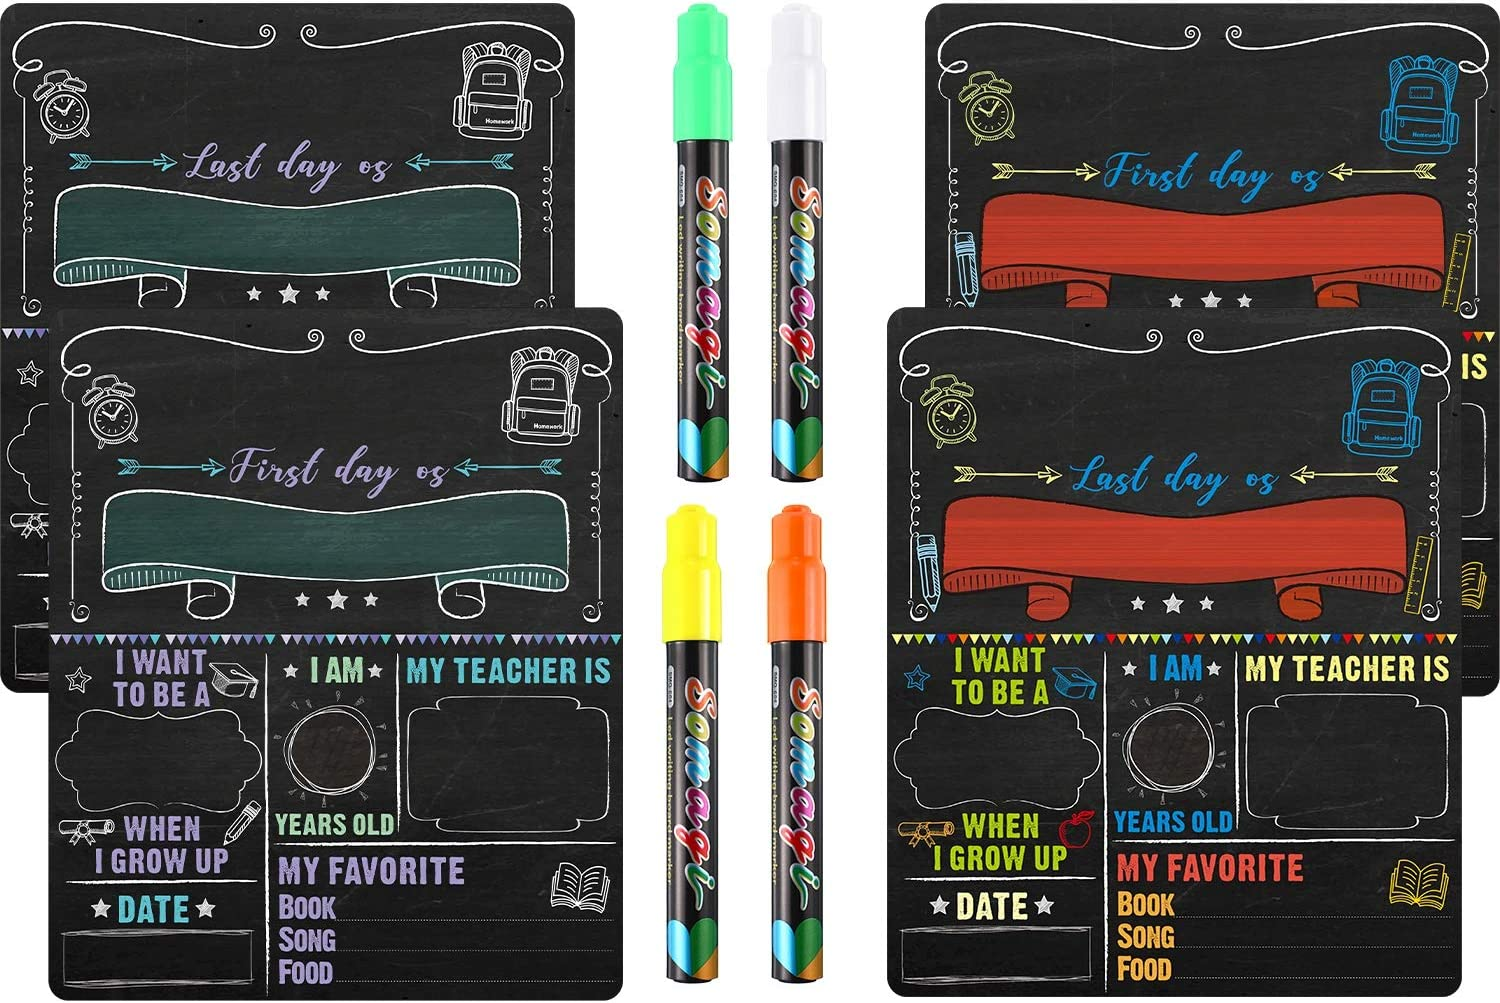 2 Pieces Paper First and Last Day of School Chalkboard Sign Cardboard Back to School Sign with 4 Color Liquid Chalk Markers for Kids, Back to School Photo Prop Cardboard Double Sided (6 Pieces)